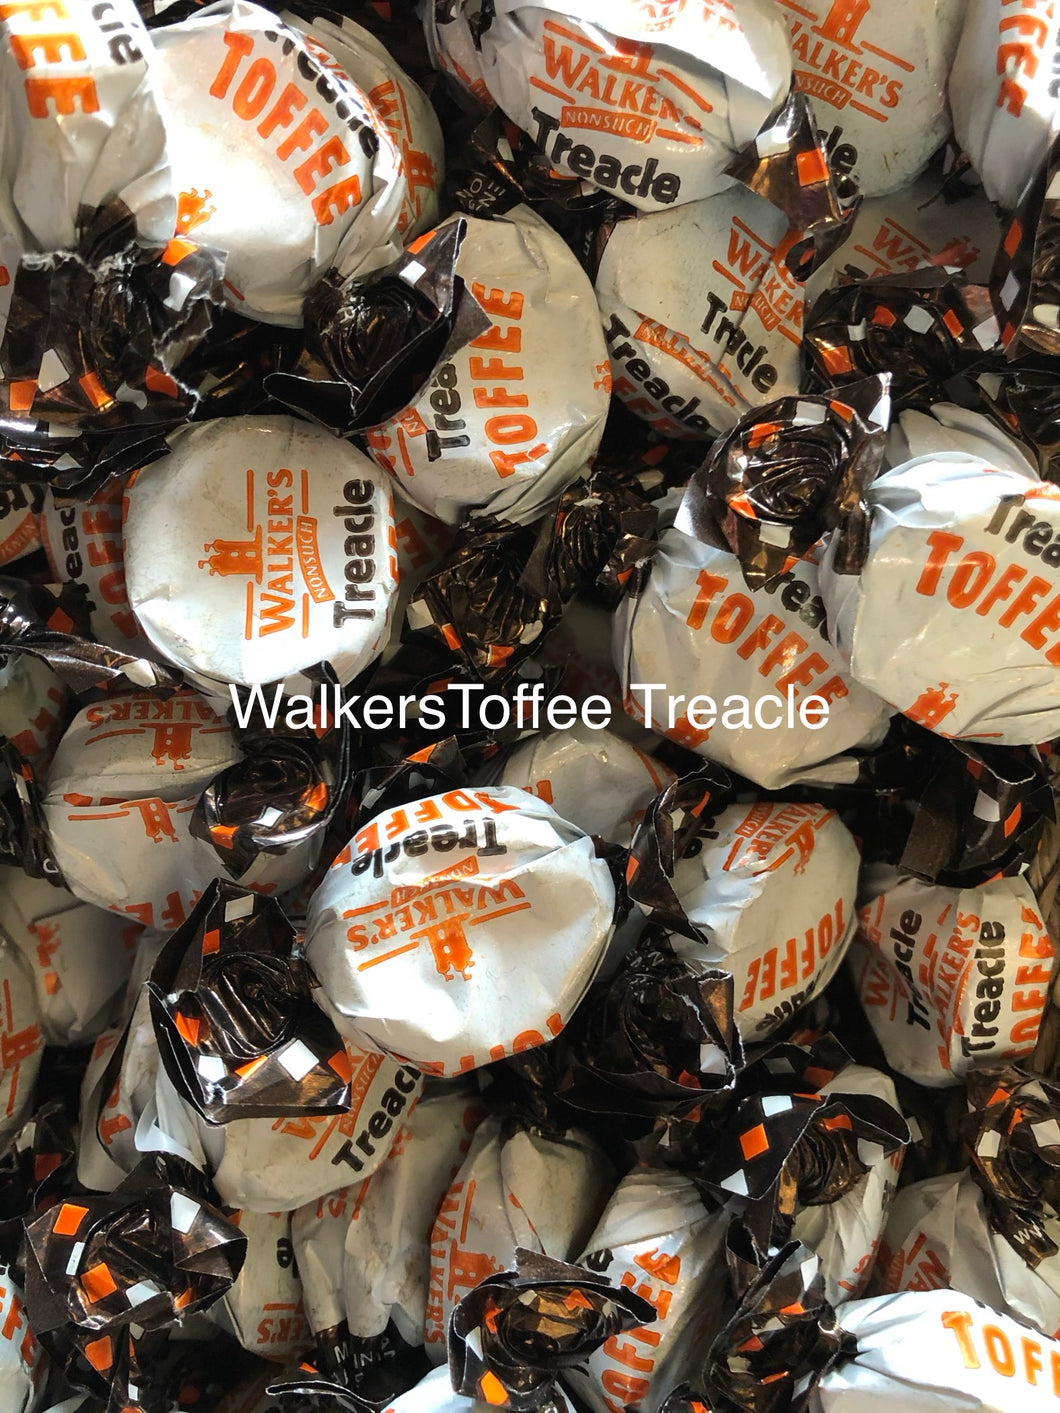 Walker's Toffee Treacle